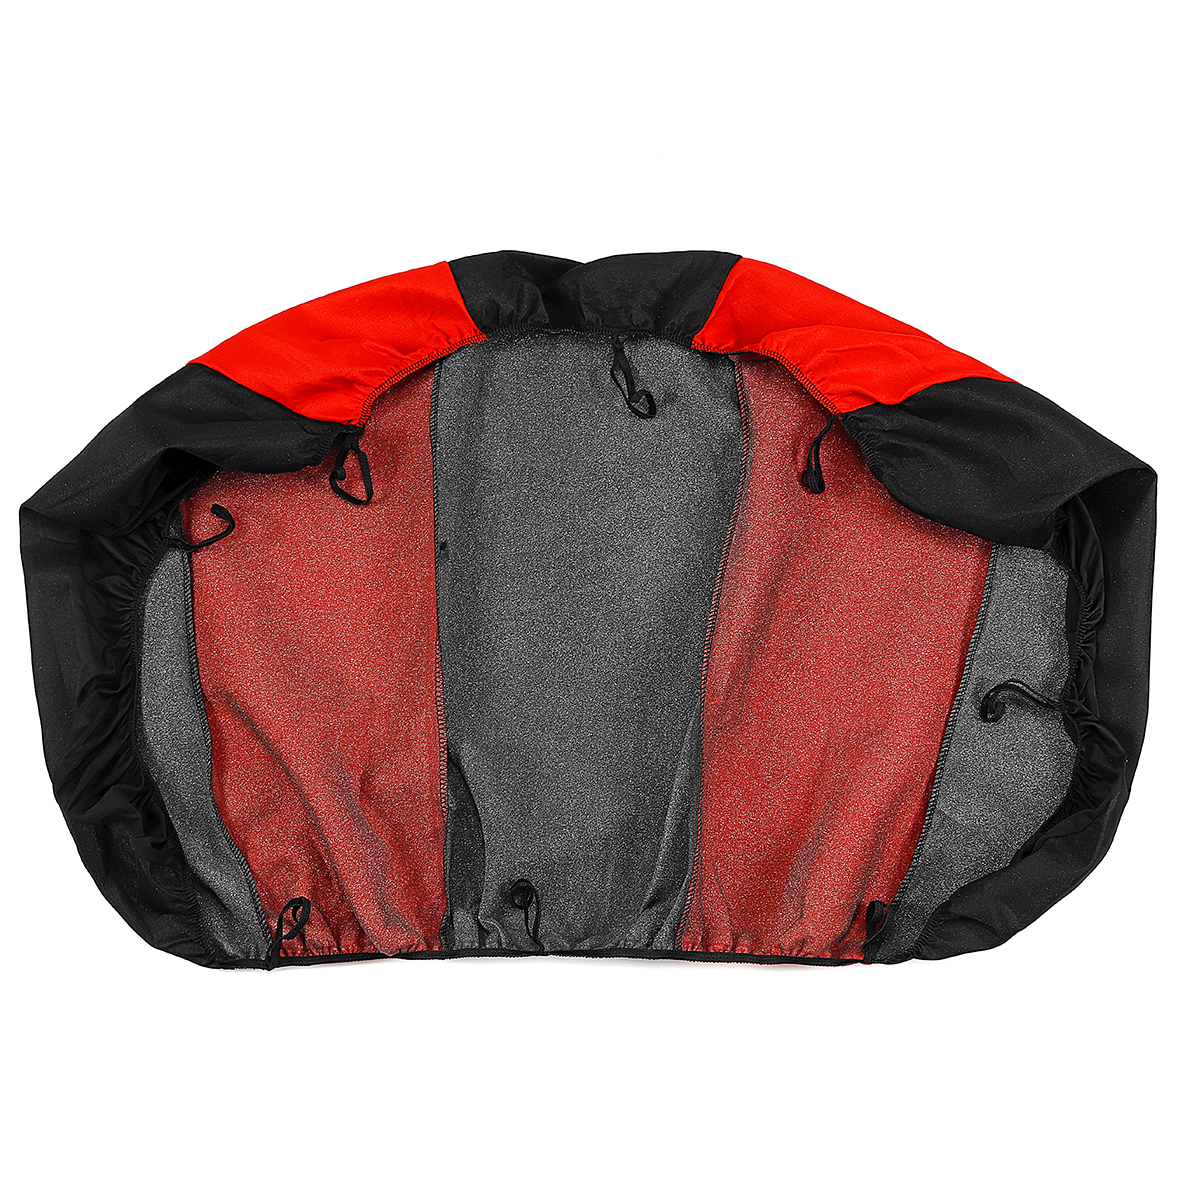 Polyester Fabric Car Front and Back Seat Cover Cushion Protector Universal for Five Seats Car